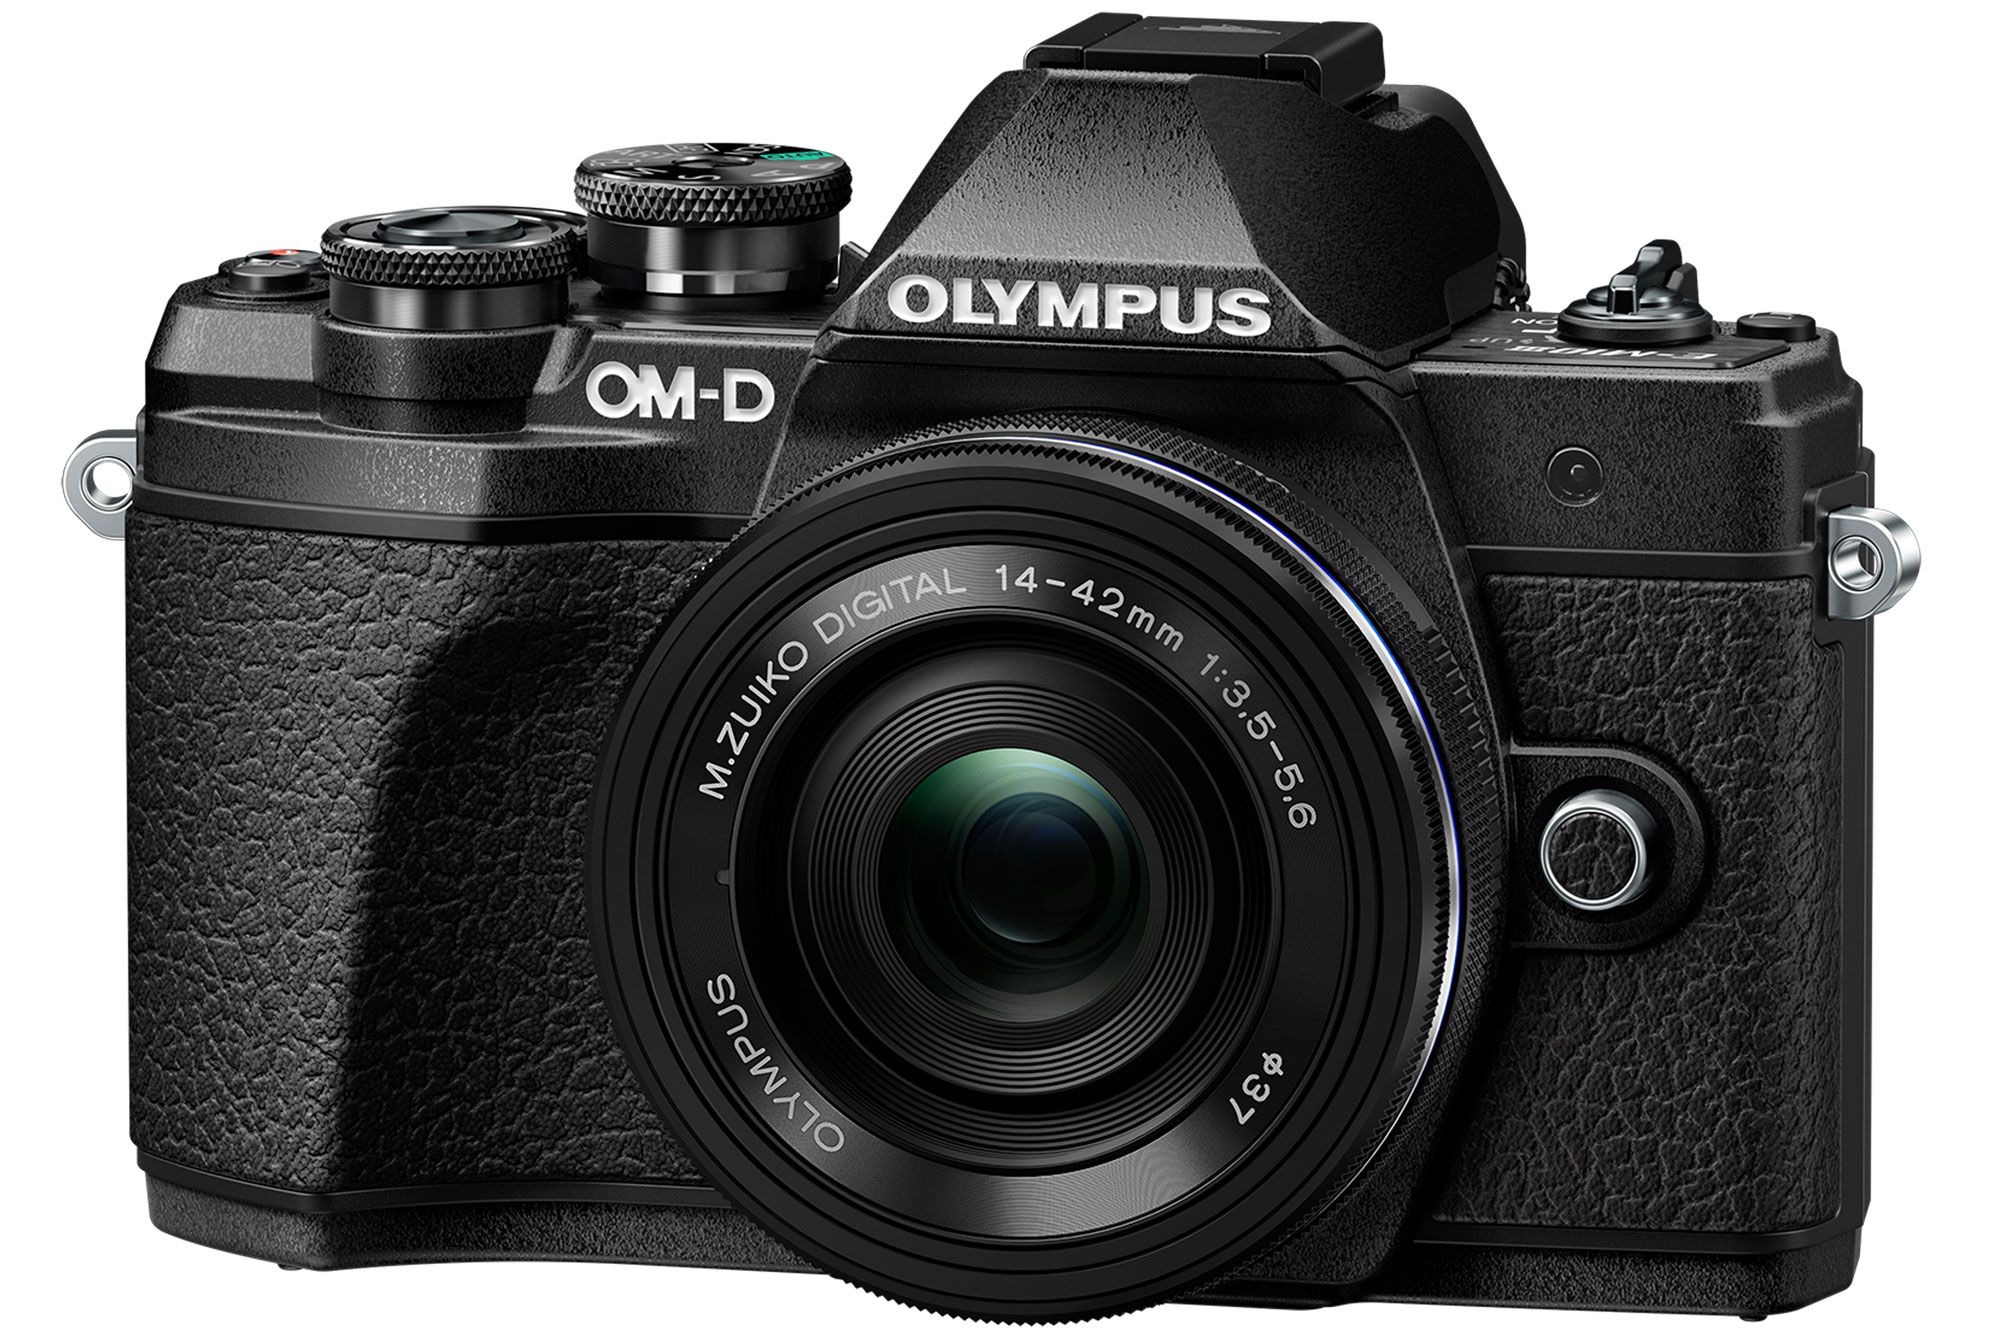 Olympus OM-D E-M10 Mark III – the latest mirrorless camera from Olympus is a major improvement